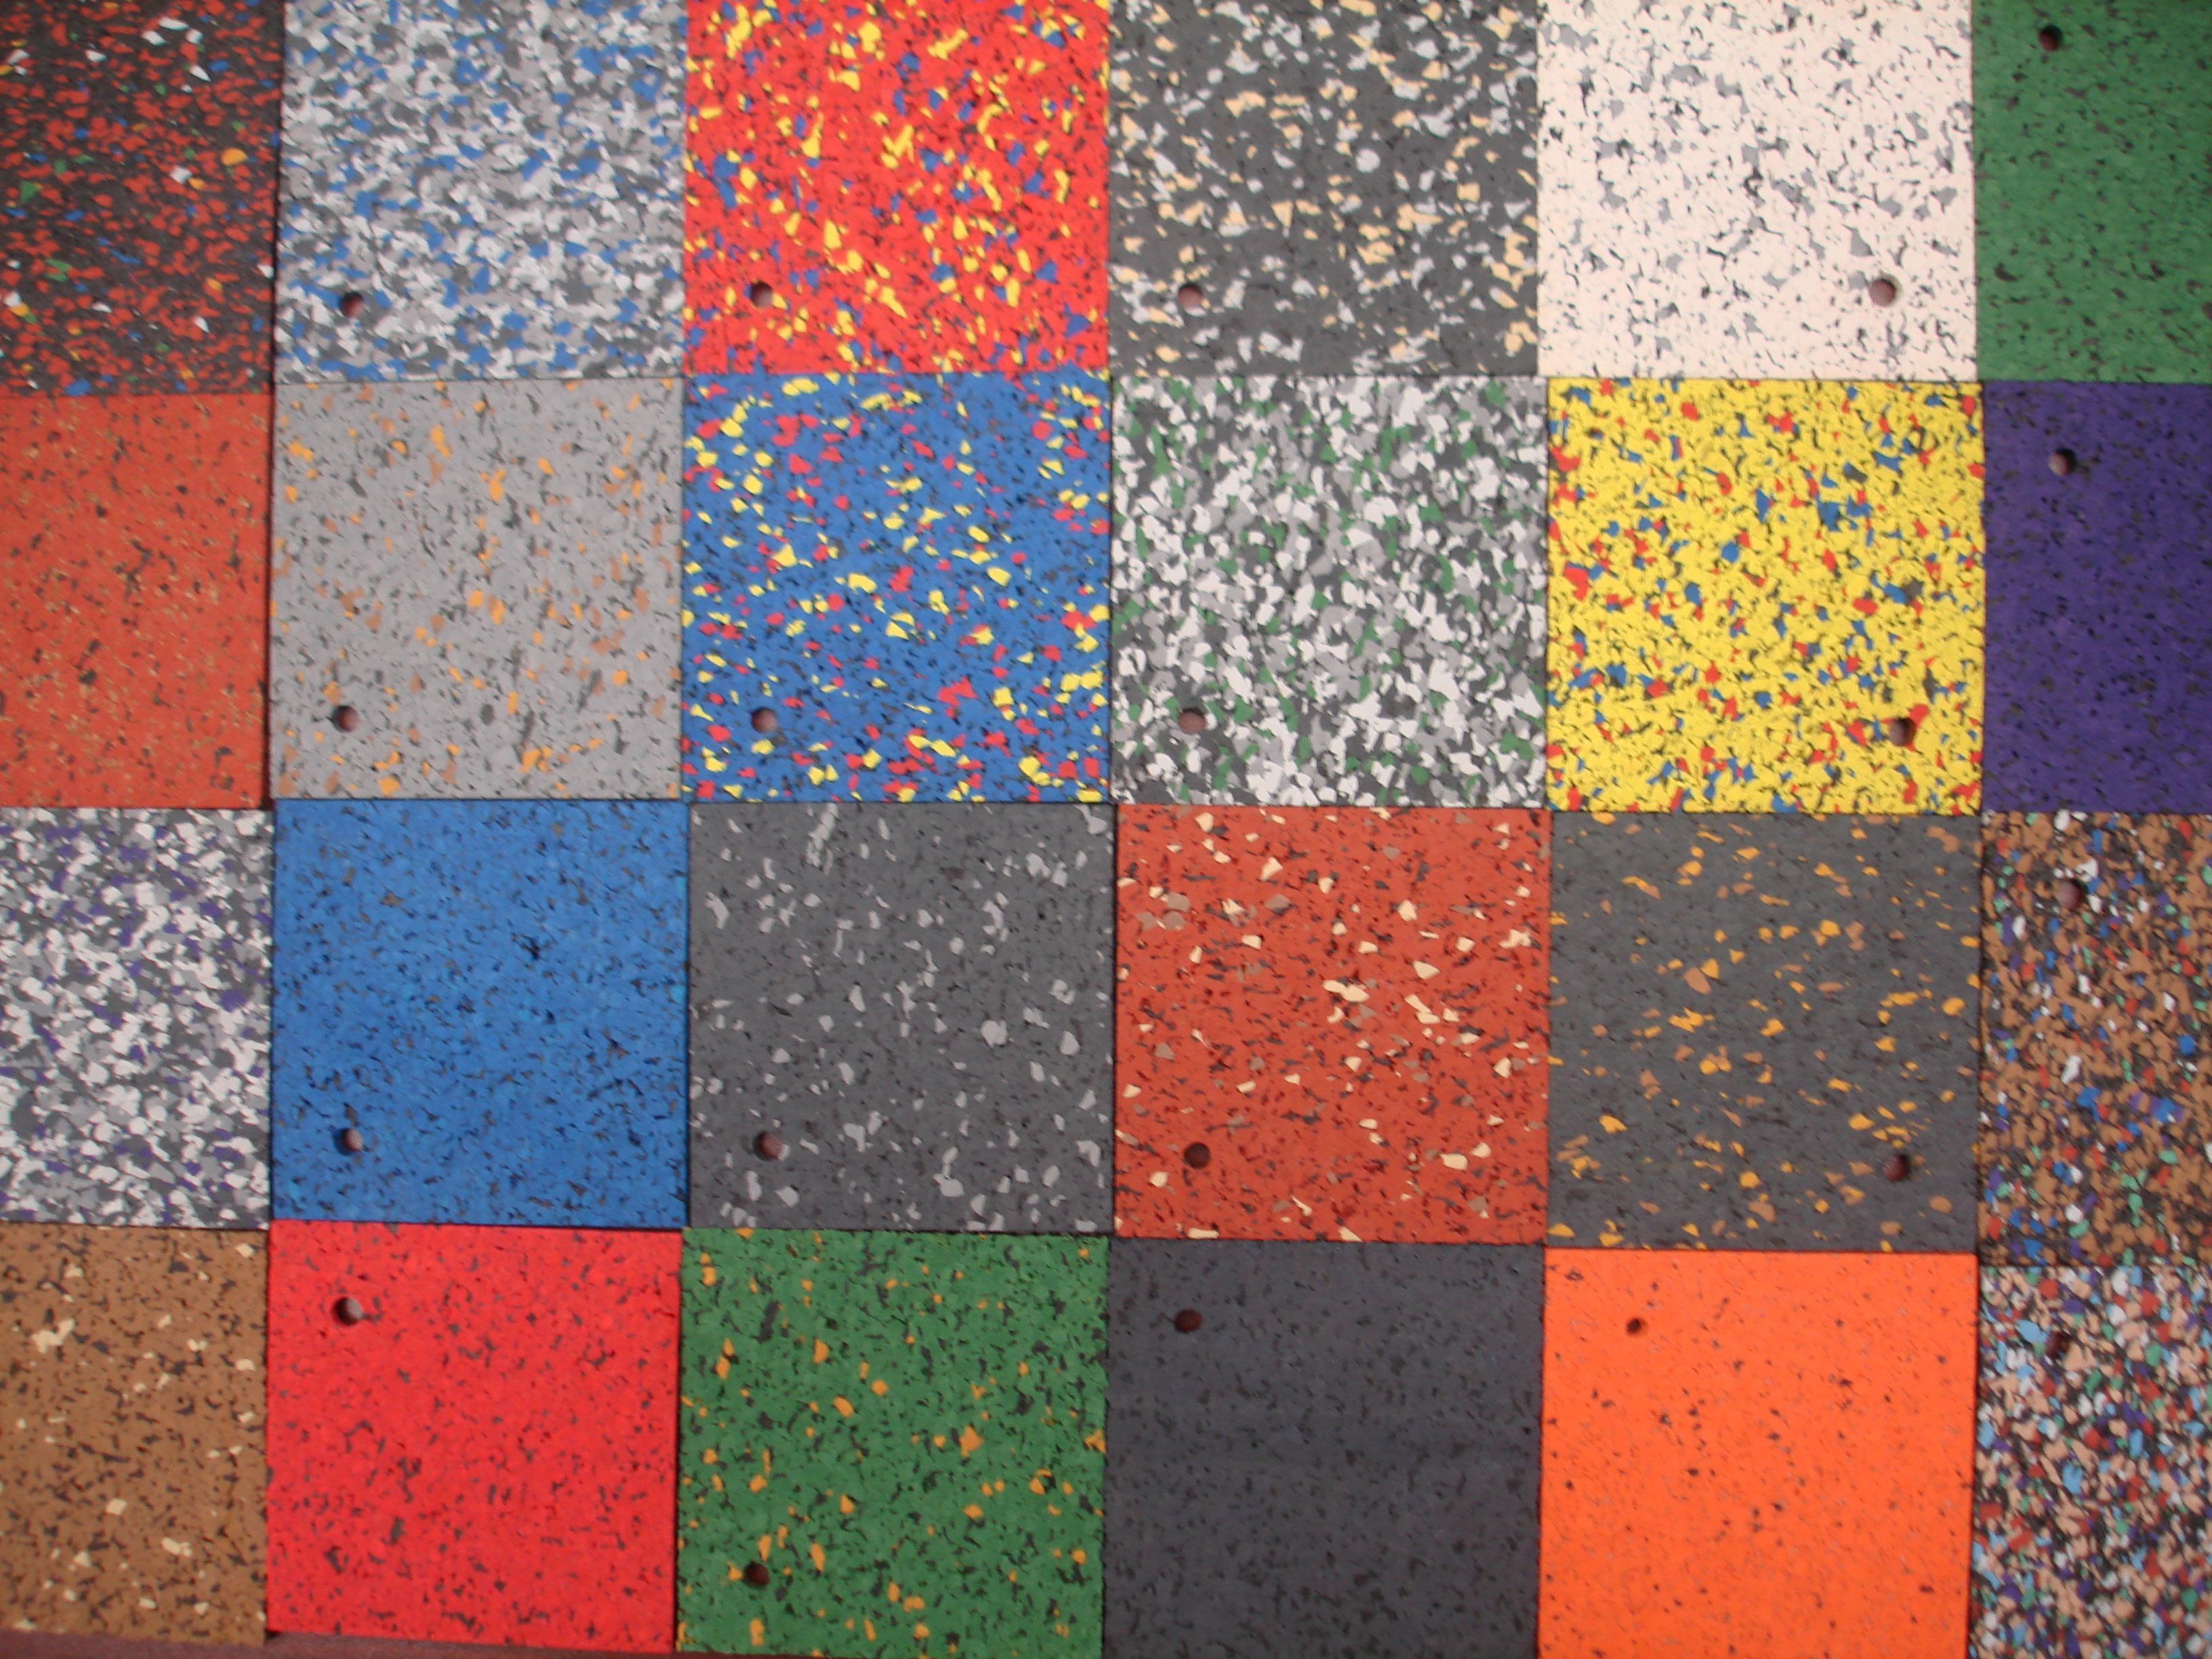 Flooring colorful outdoor recycled rubber flooring tile design flooring colorful outdoor recycled rubber flooring tile design some benefits of rubber flooring compared with other dailygadgetfo Image collections